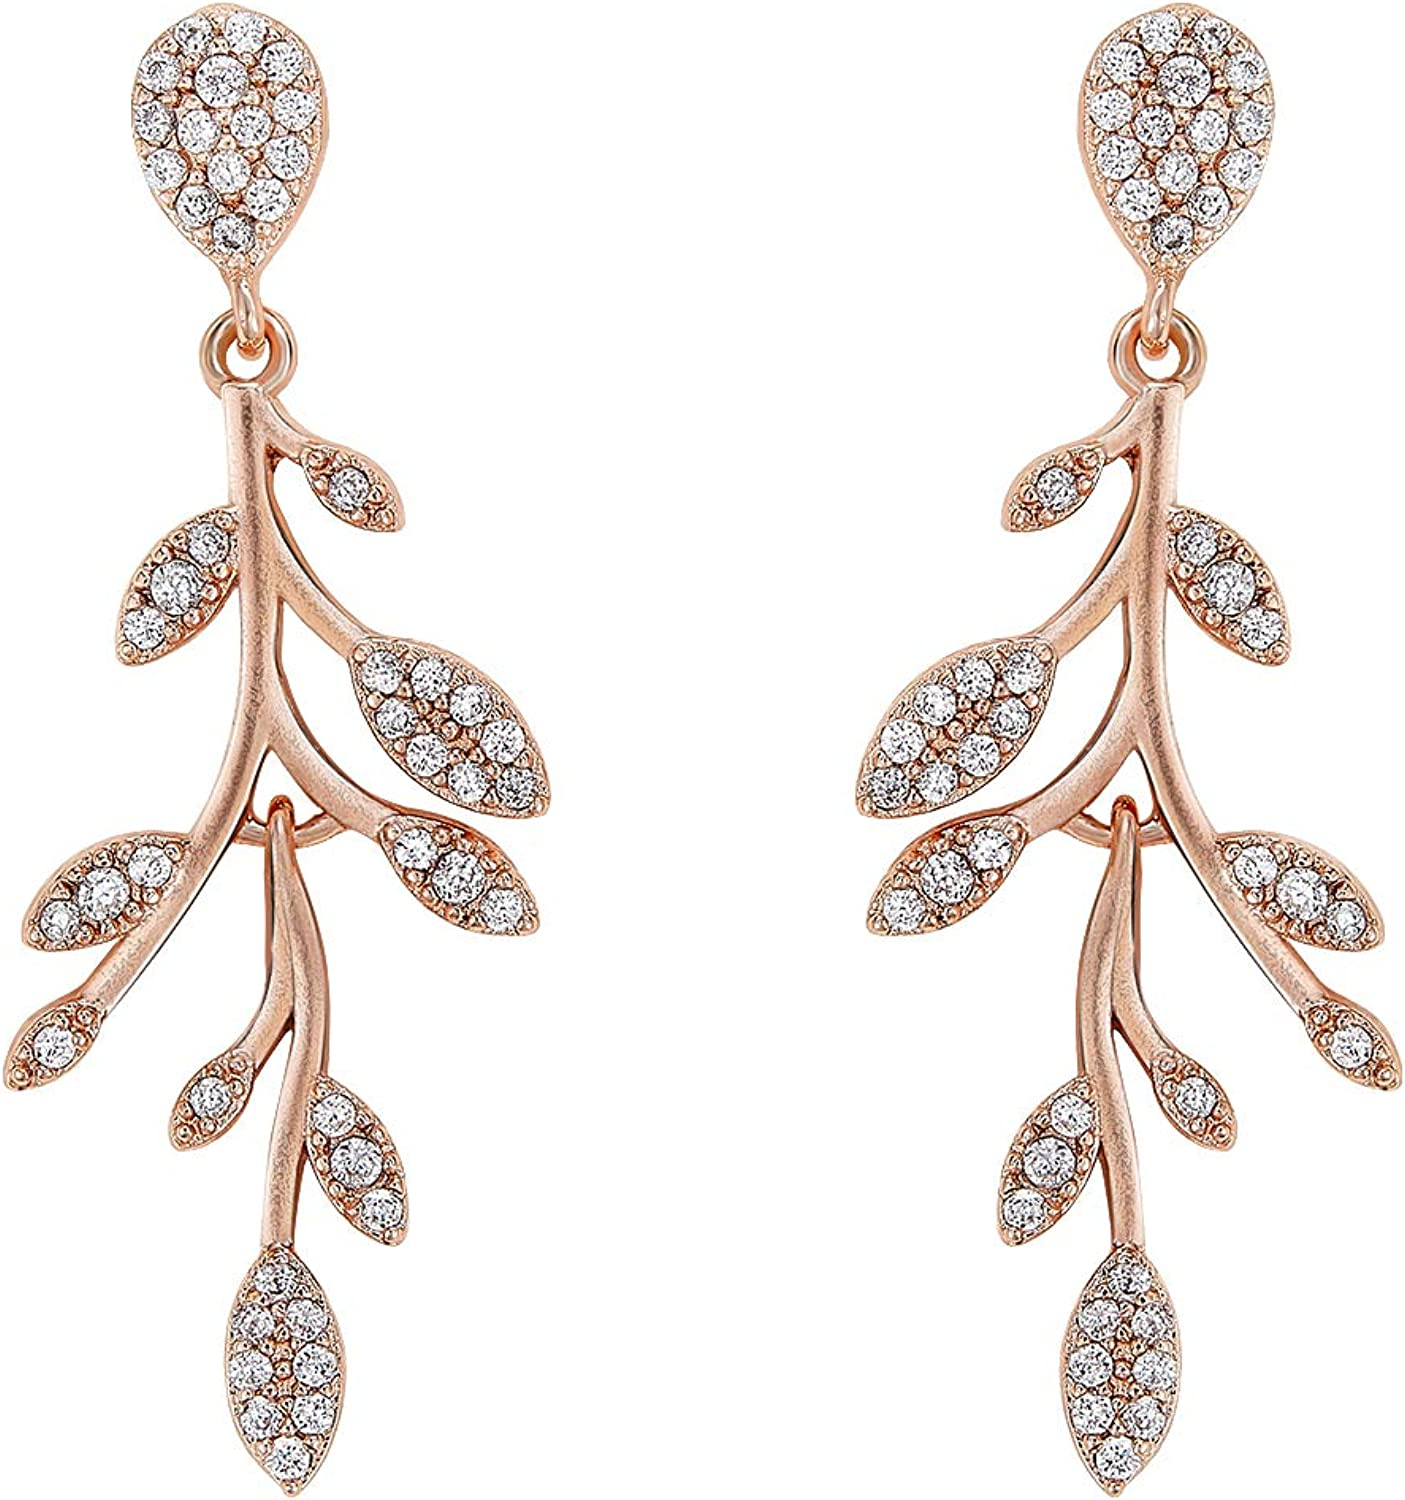 FREE SHIPPING Jewelry Earrings Leaves earrings Silver color leaves Gifts for wife Gifts Gifts for her Beautiful Chandelier leaves New